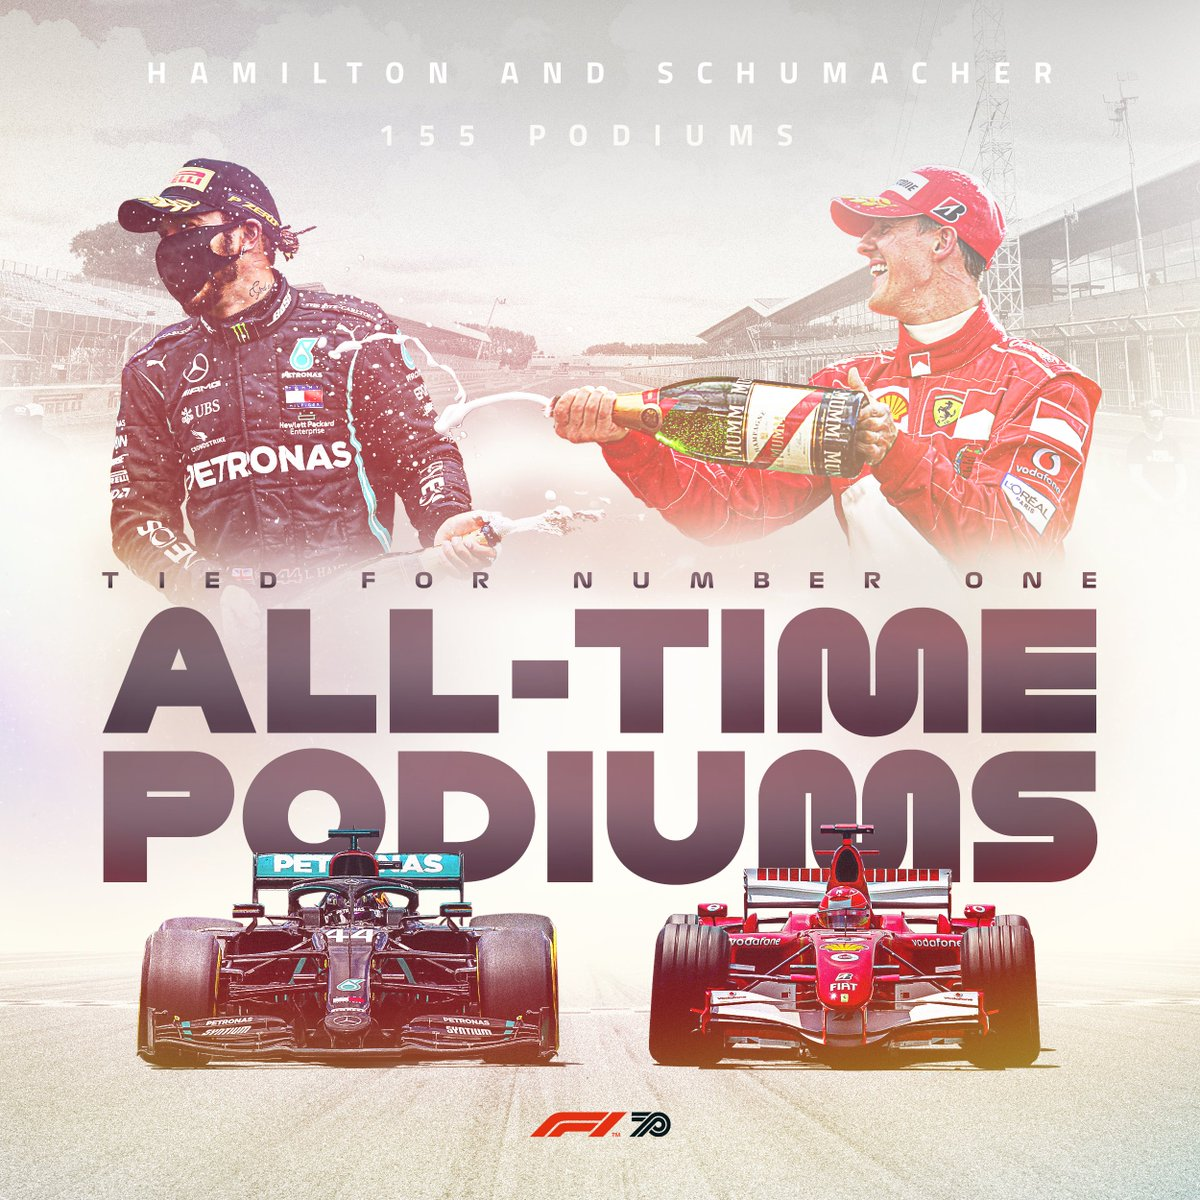 155 CAREER PODIUMS  Another landmark day for @LewisHamilton as he ties Michael Schumacher's all-time F1 record 👏  #F170 🇬🇧 #F1 https://t.co/PBrmFSyzE8